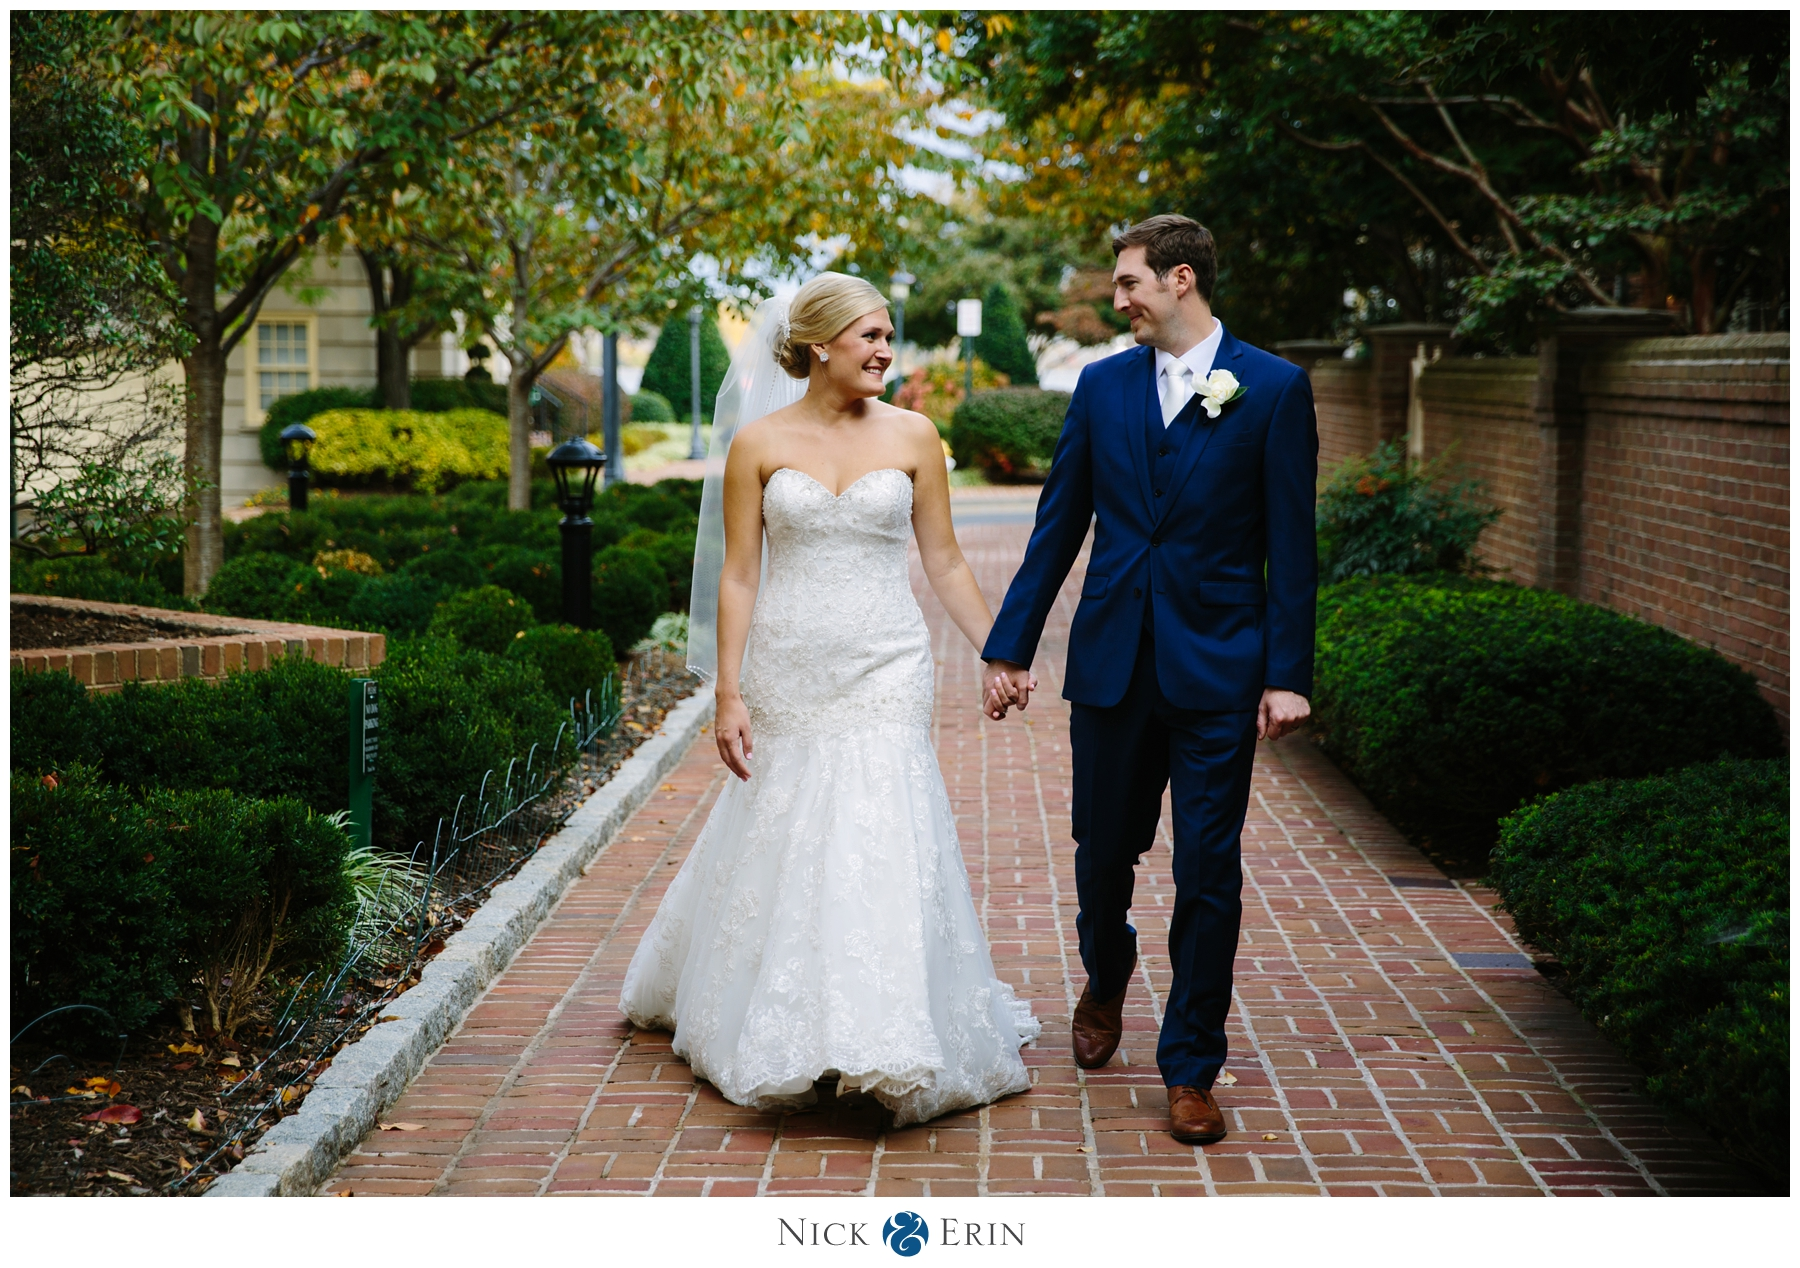 Donner_Photography_Torpedo Factory Wedding_Courtney and Scott_0010